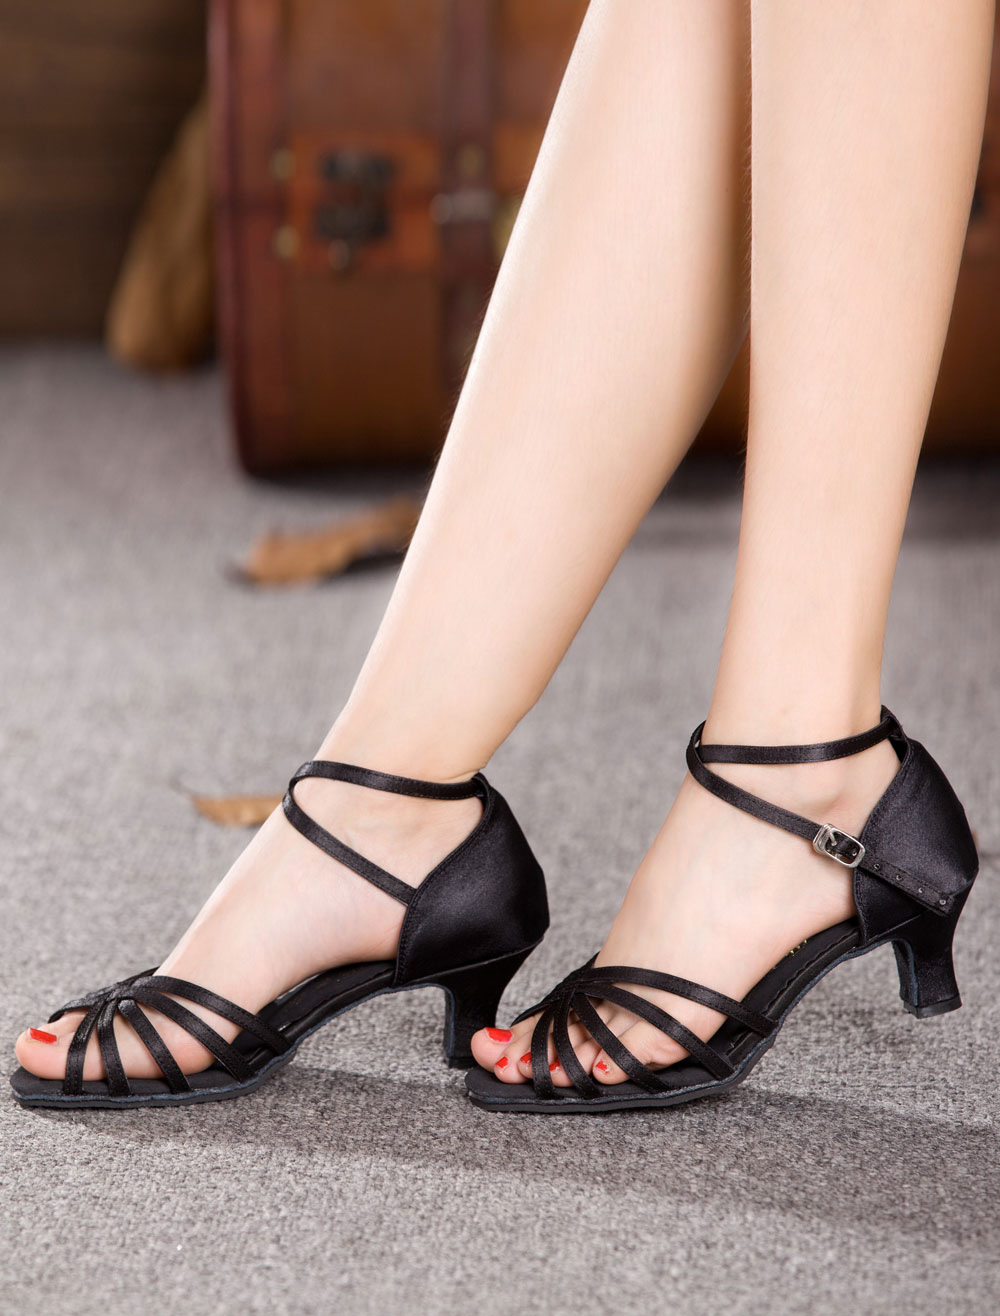 Milanoo / Black Dance Sandals Straps Satin Heels for Women